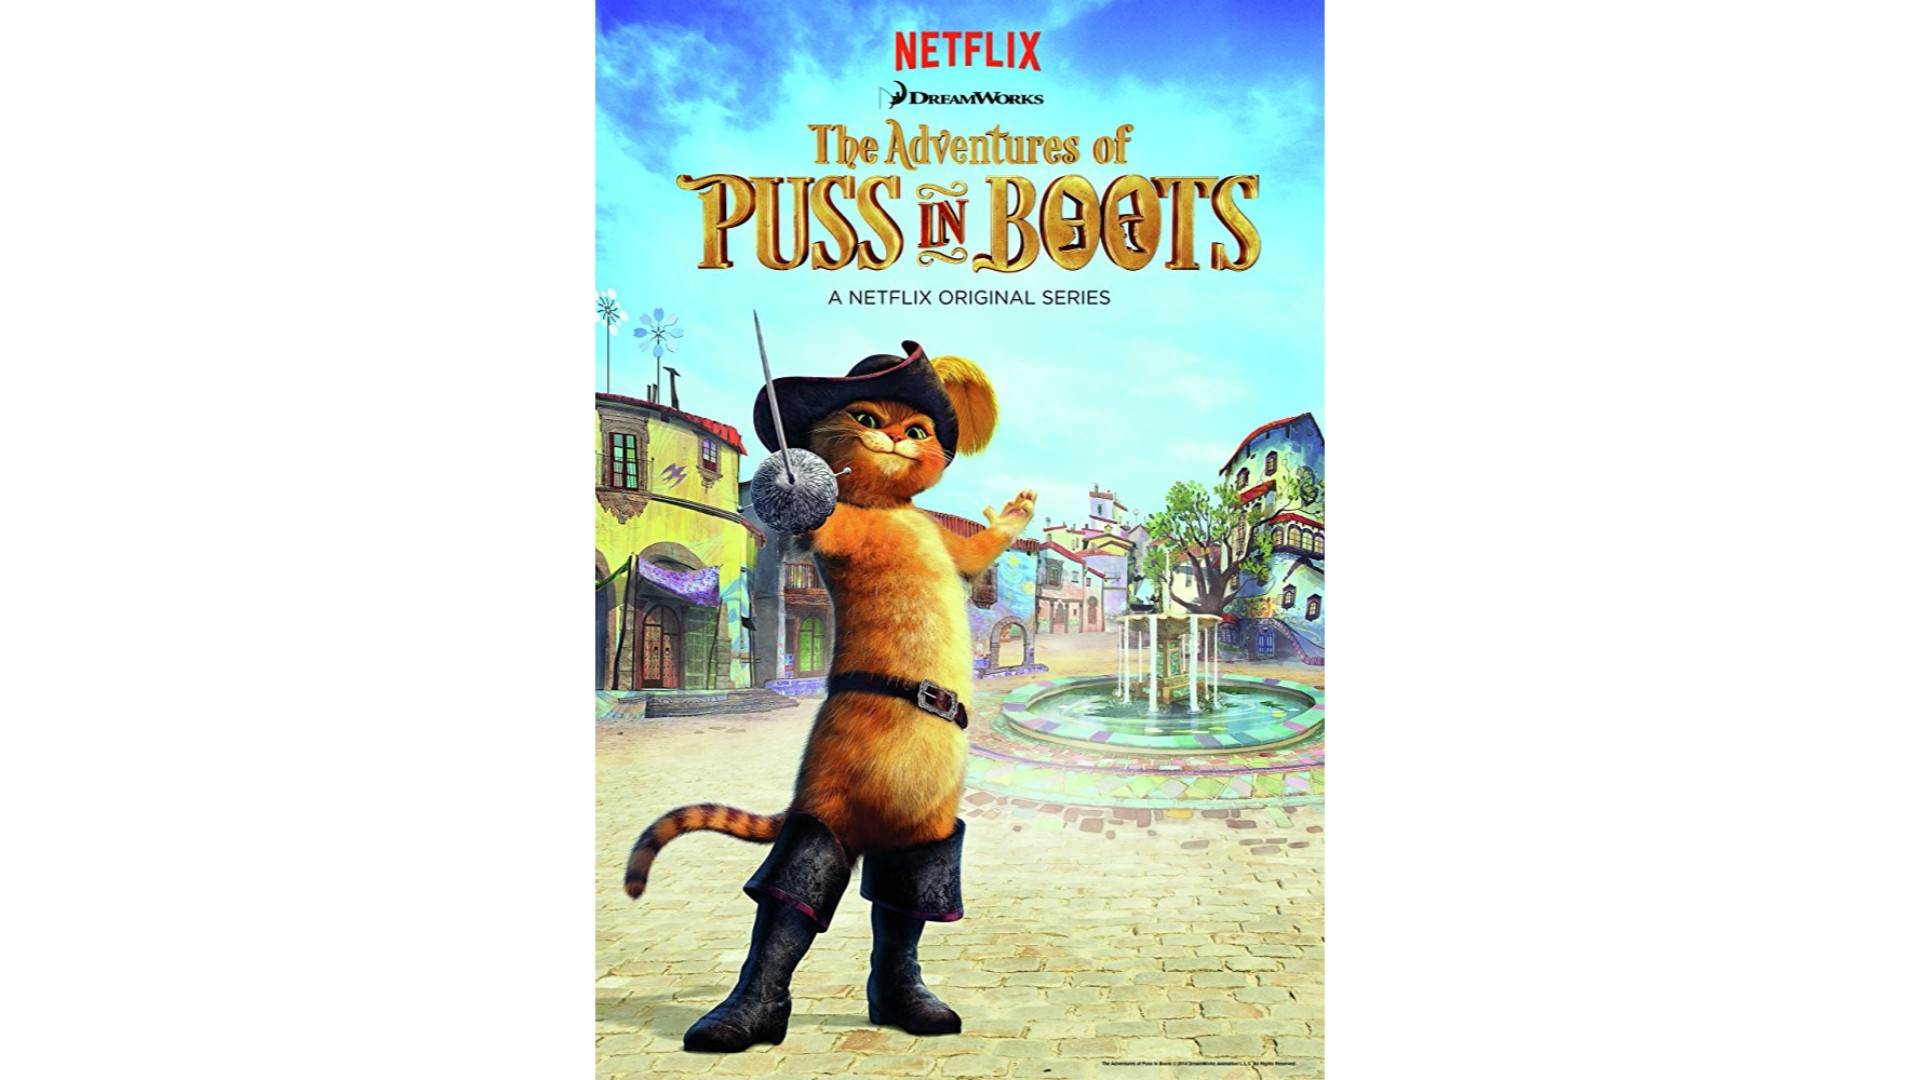 The Adventures of Puss in Boots saison 6